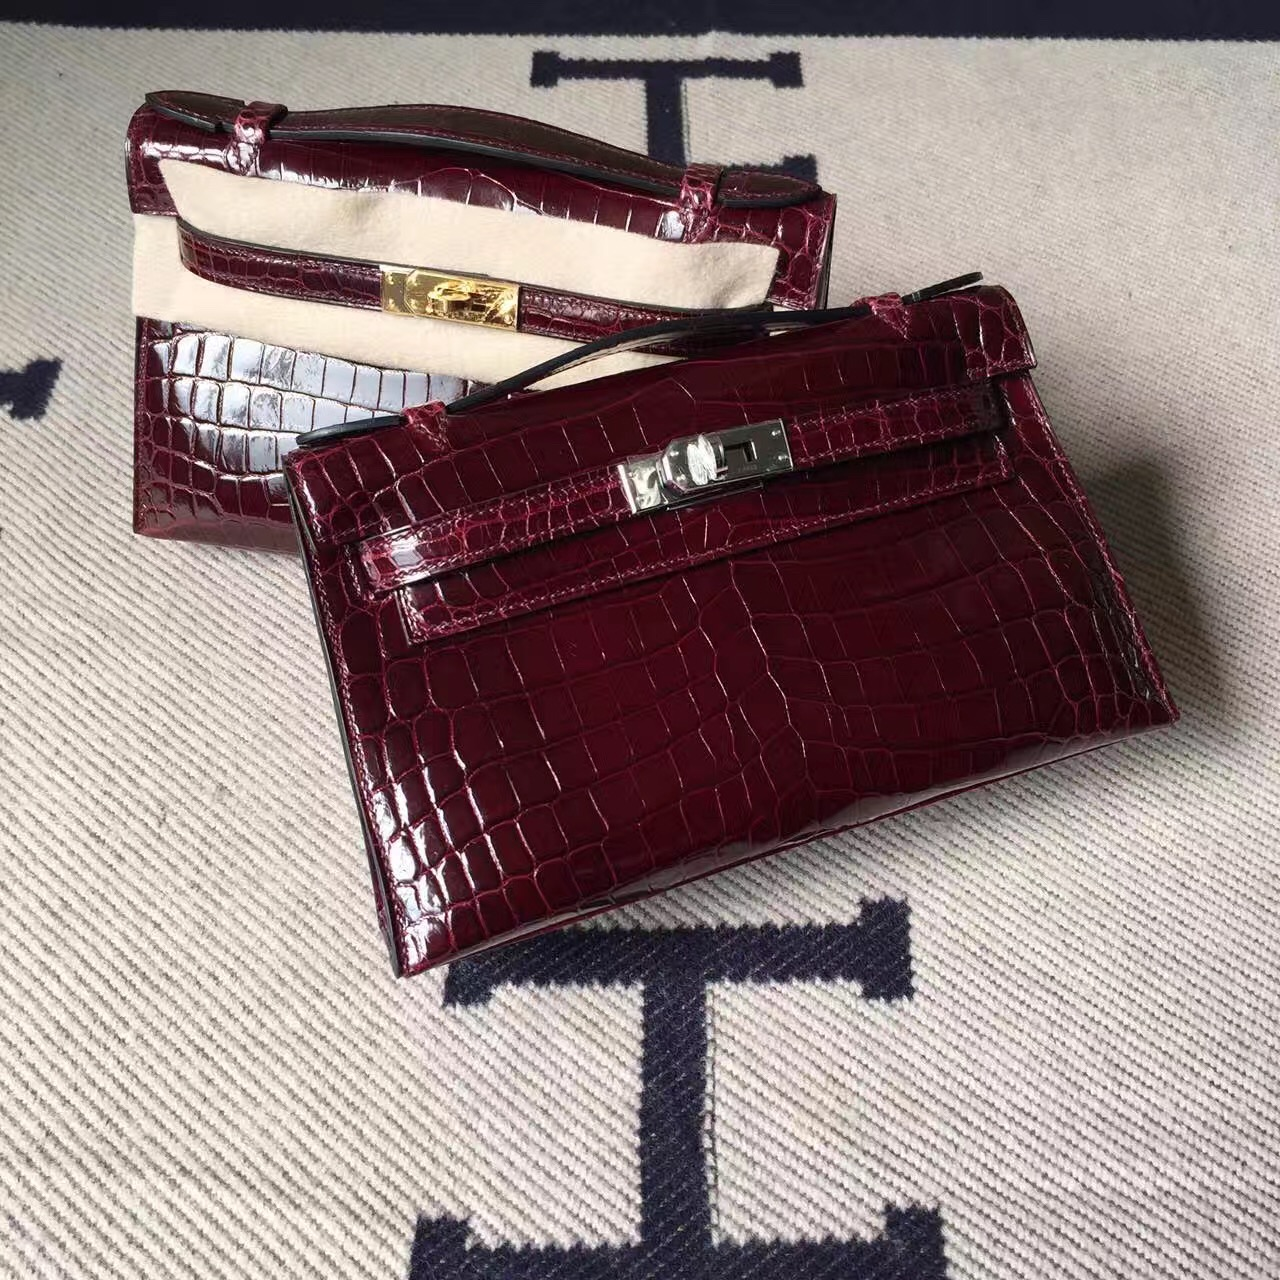 Hot Sale Hermes Minikelly Bag 22CM CK57 Bordeaux Crocodile Shiny Leather